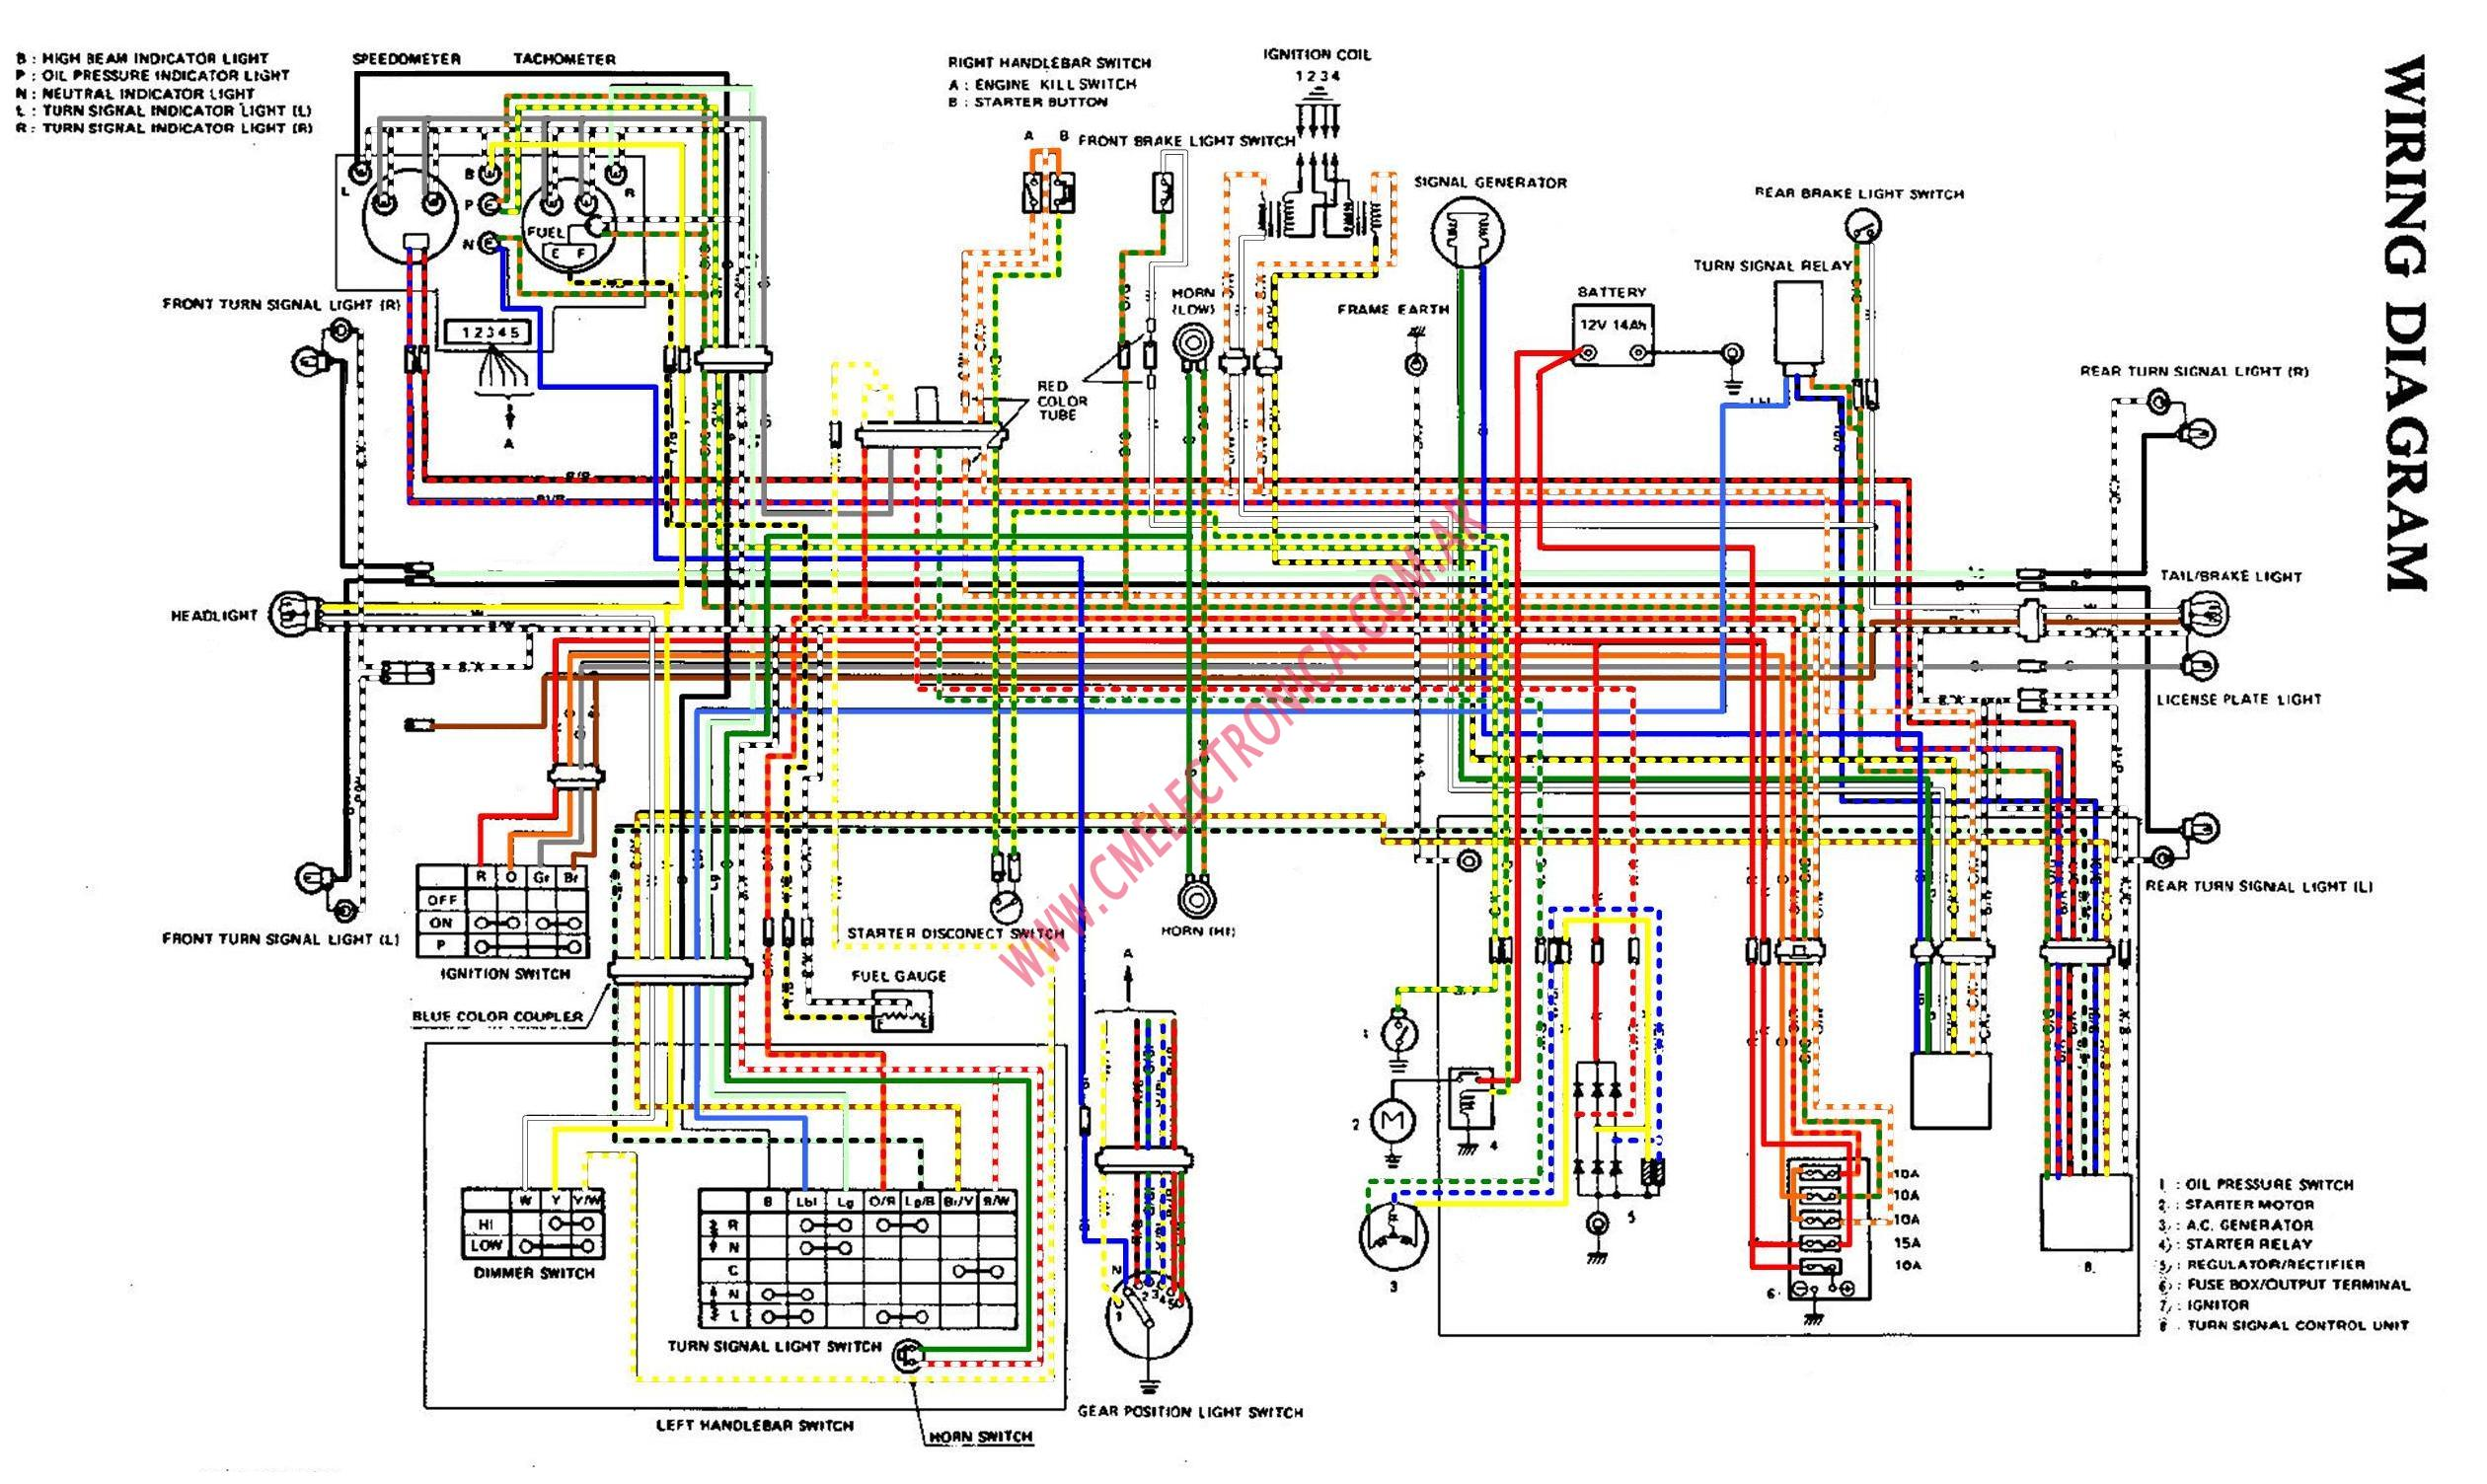 suzuki gs1000 suzuki gs450l wiring diagram suzuki wiring diagrams instruction 1980 suzuki gs550 wiring diagram at gsmx.co